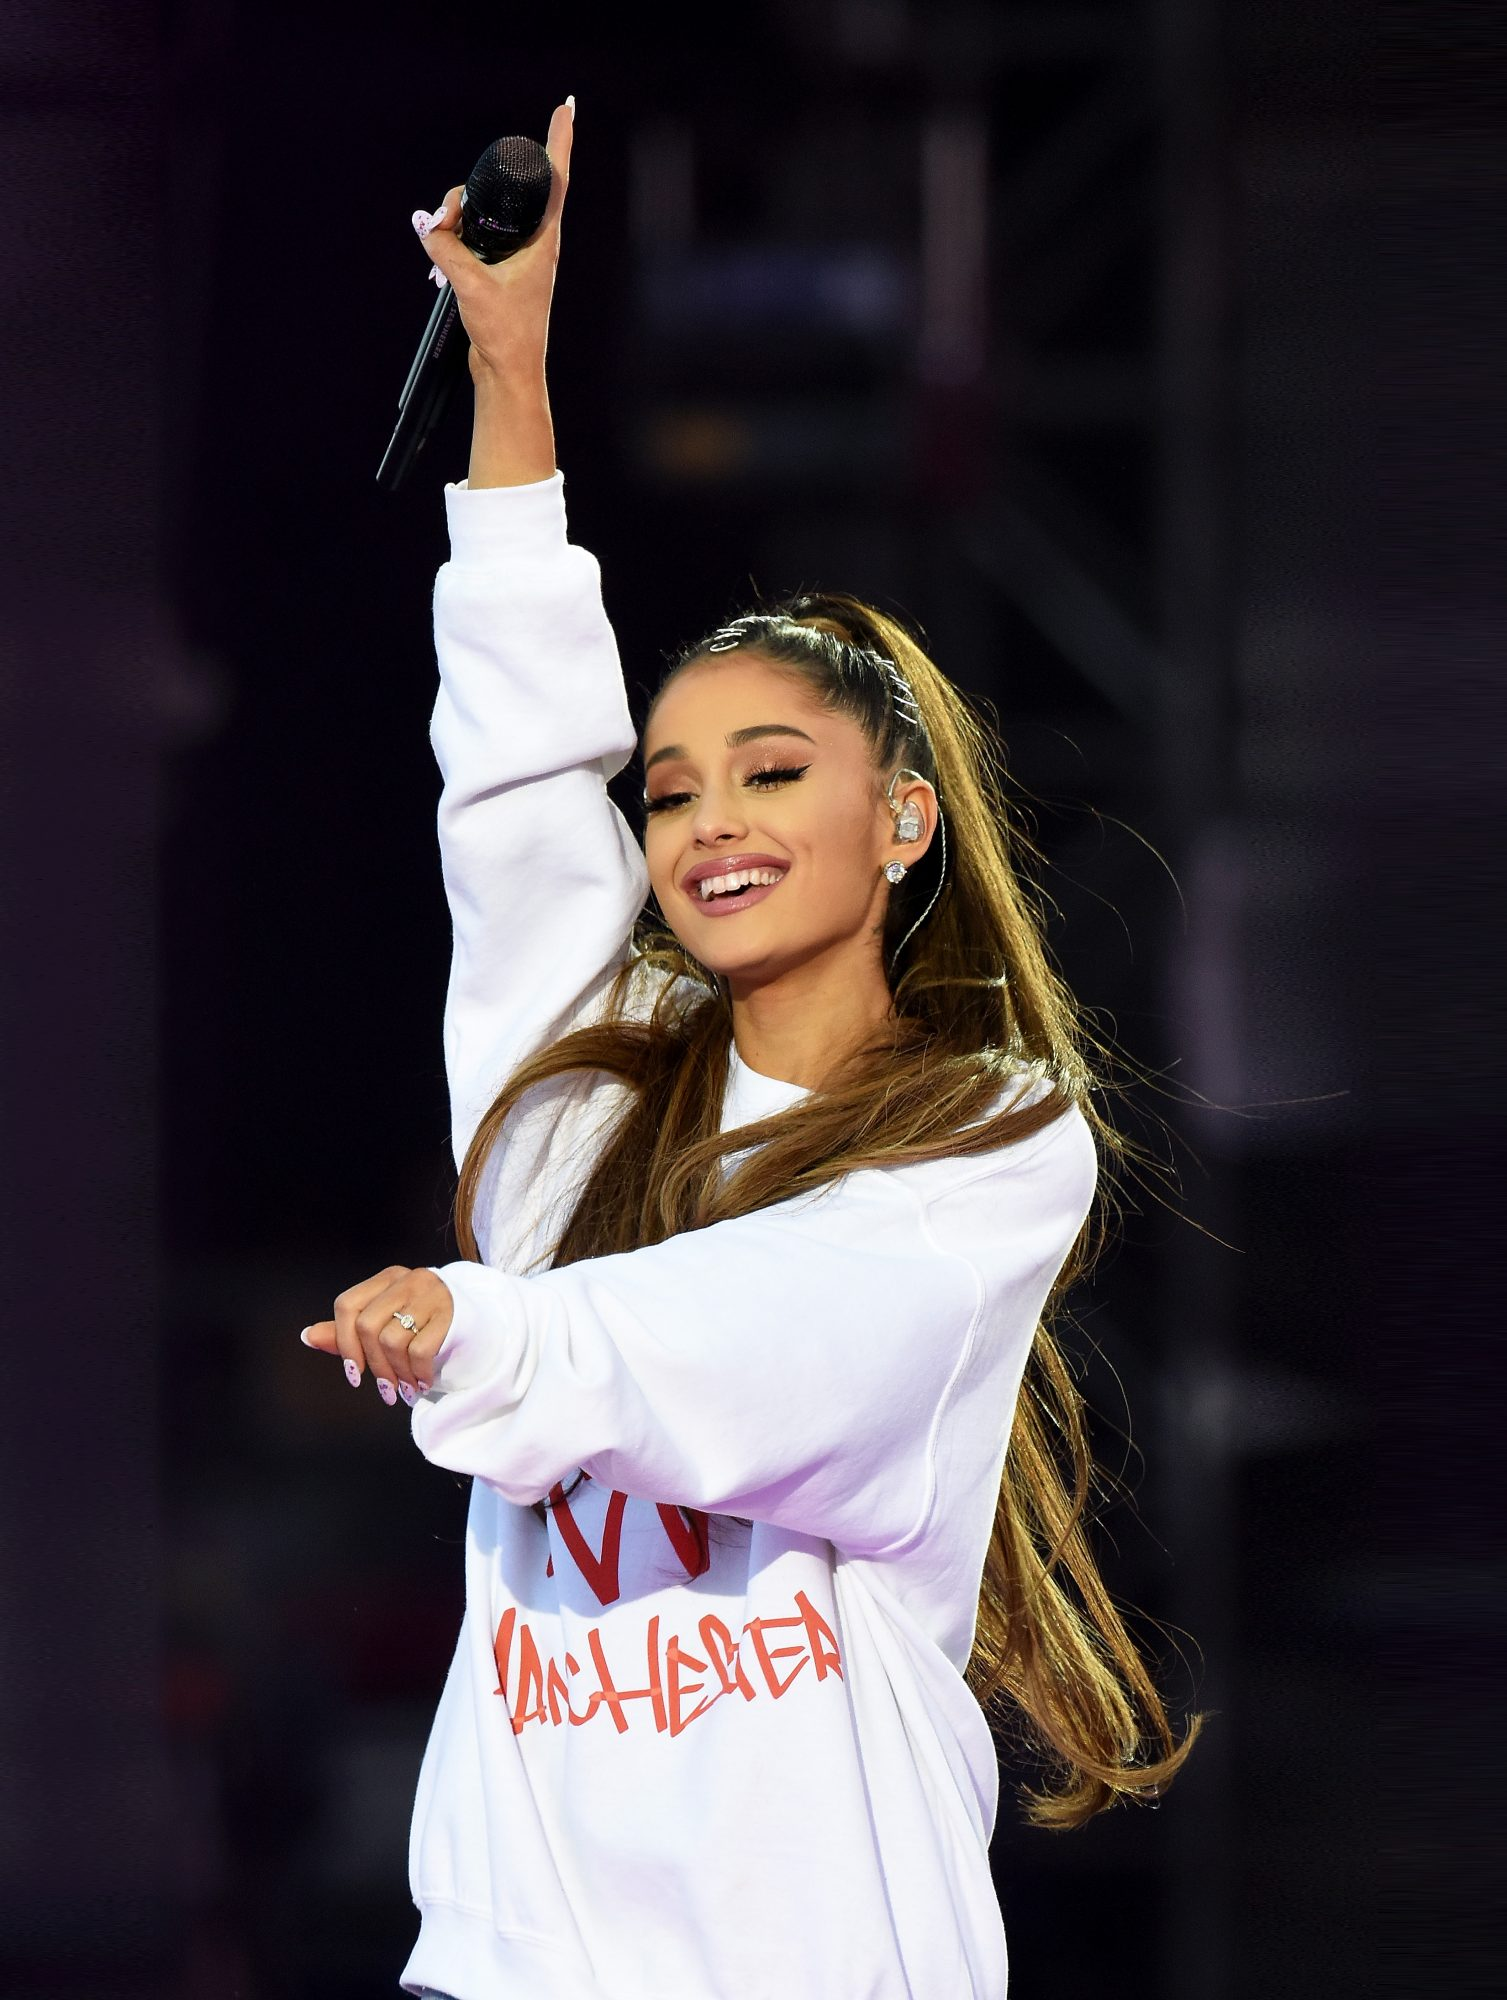 Fans Wonder If Ariana Grande Is Engaged, But She's Been Wearing That Ring for Months